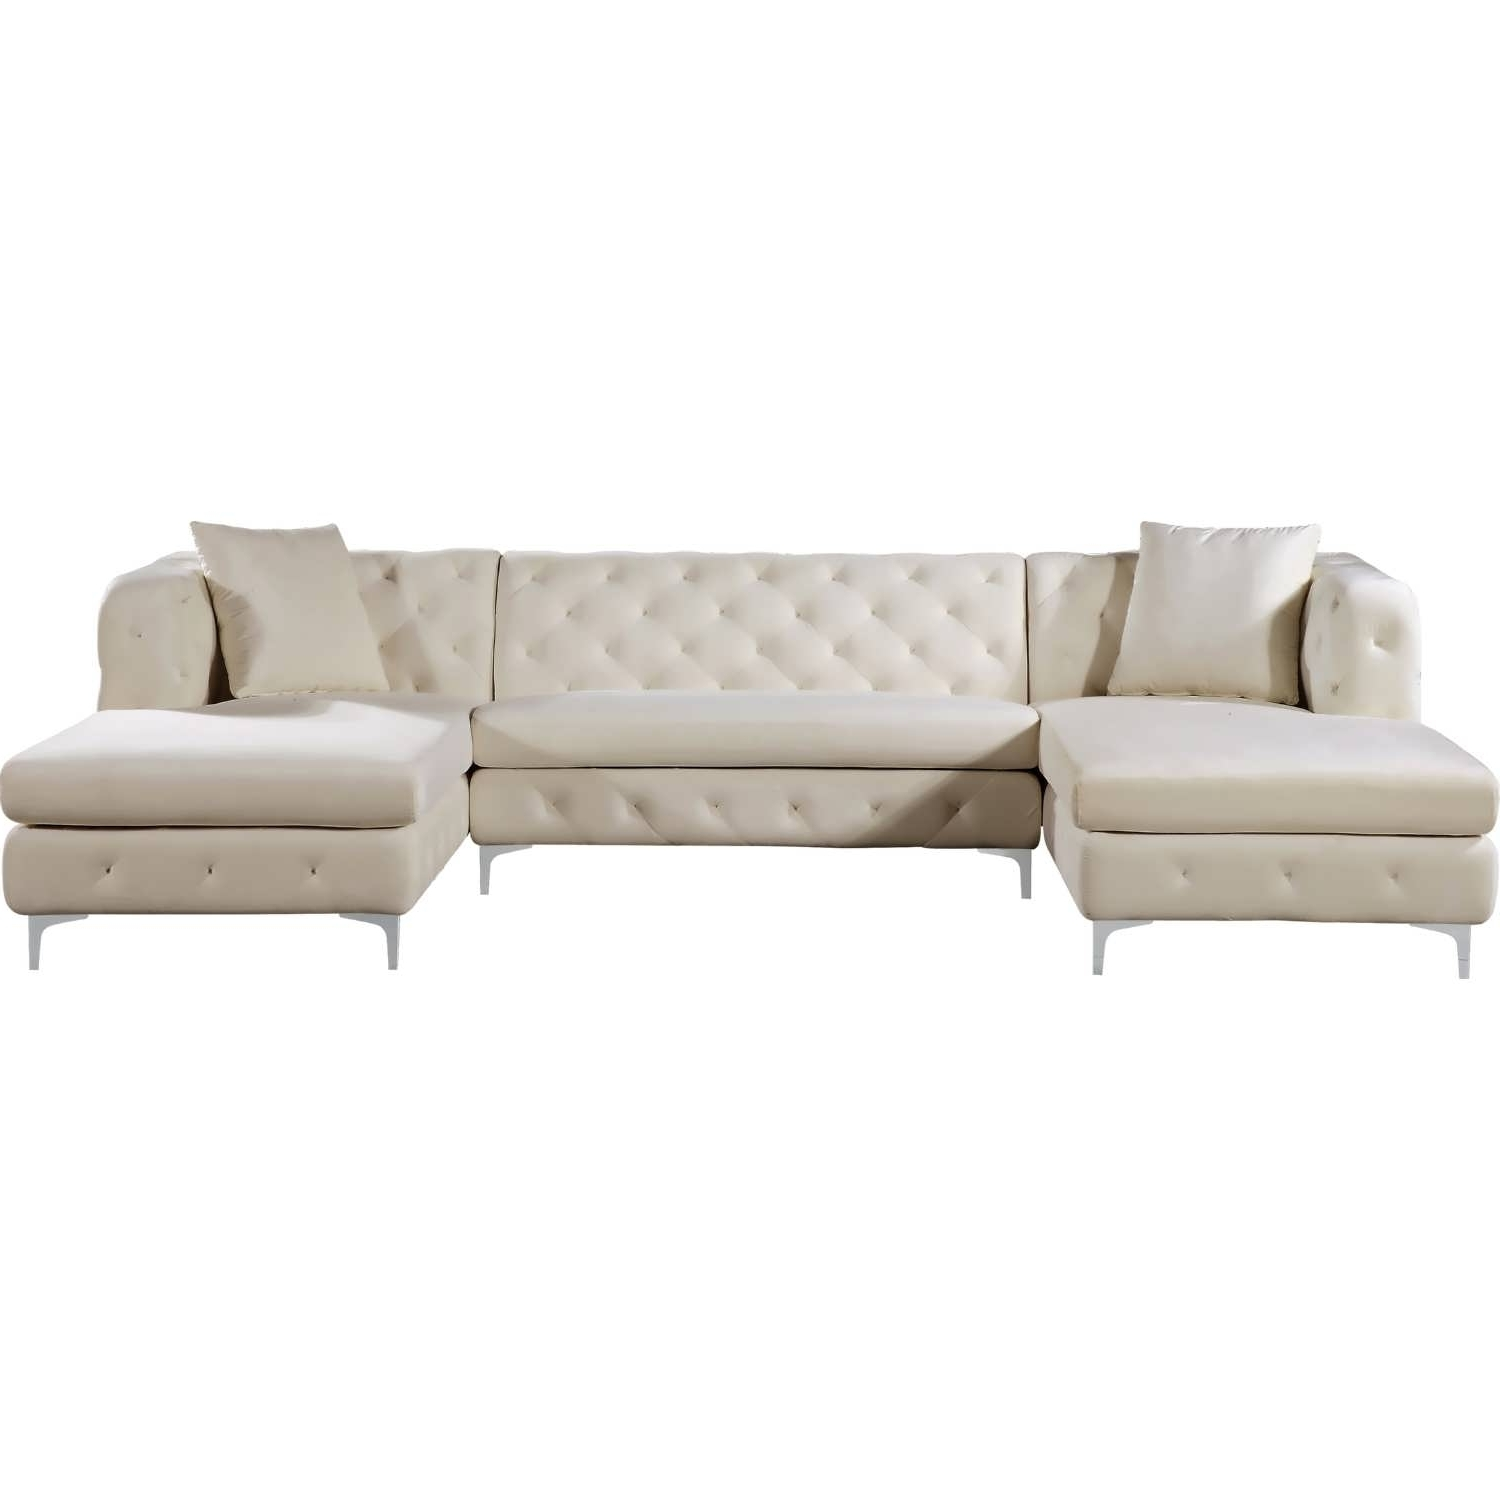 Sofa : Sectional Sofa With Chaise Small Chaise Blue Sectional Sofa For Most Popular Small Chaise Sofas (View 11 of 15)